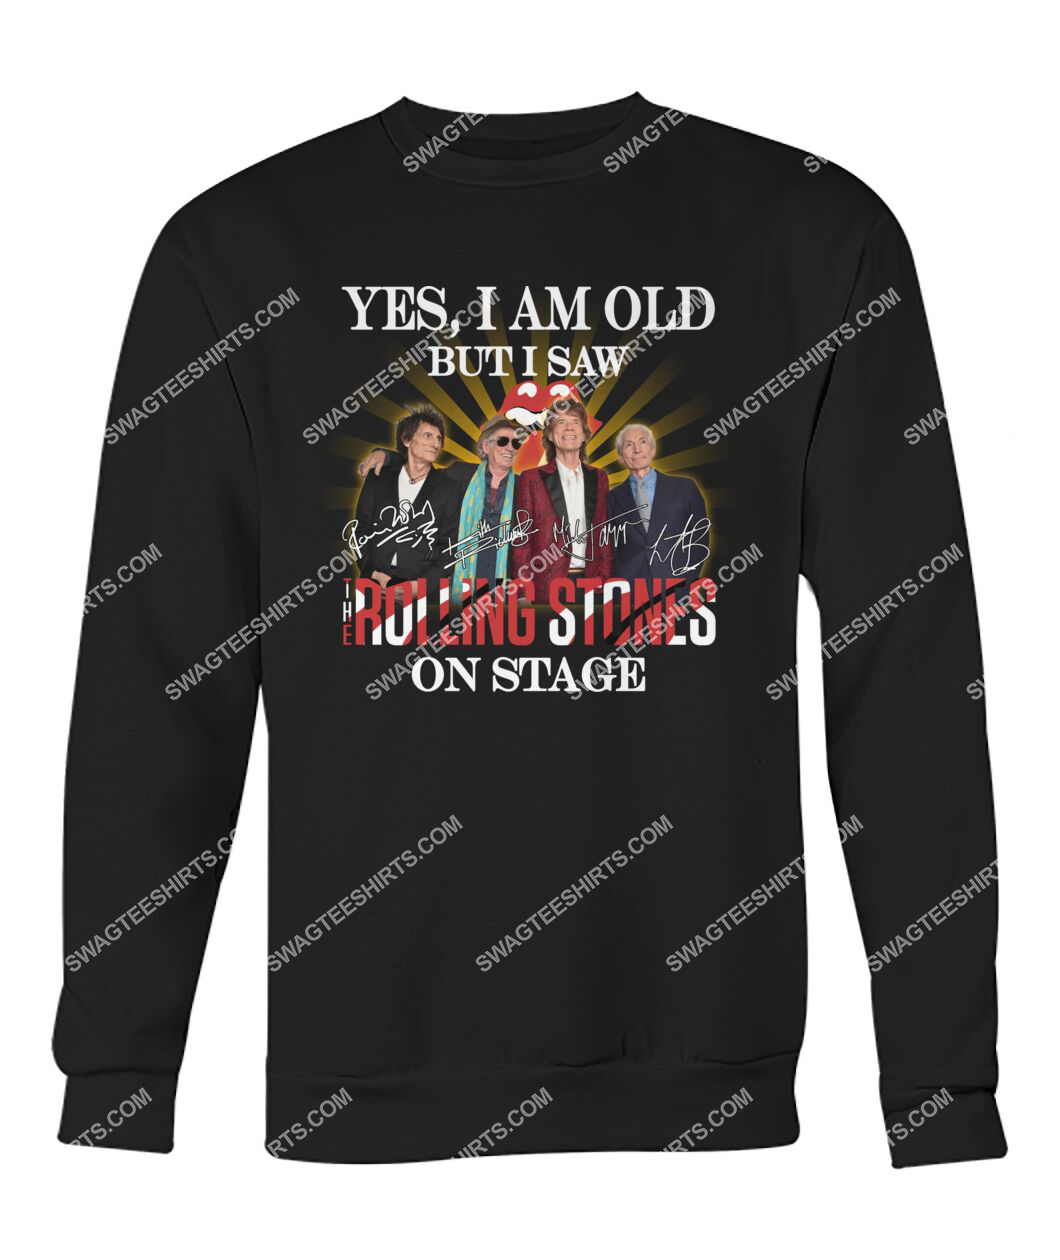 yes i am old but i saw the rolling stones on stage sweatshirt 1